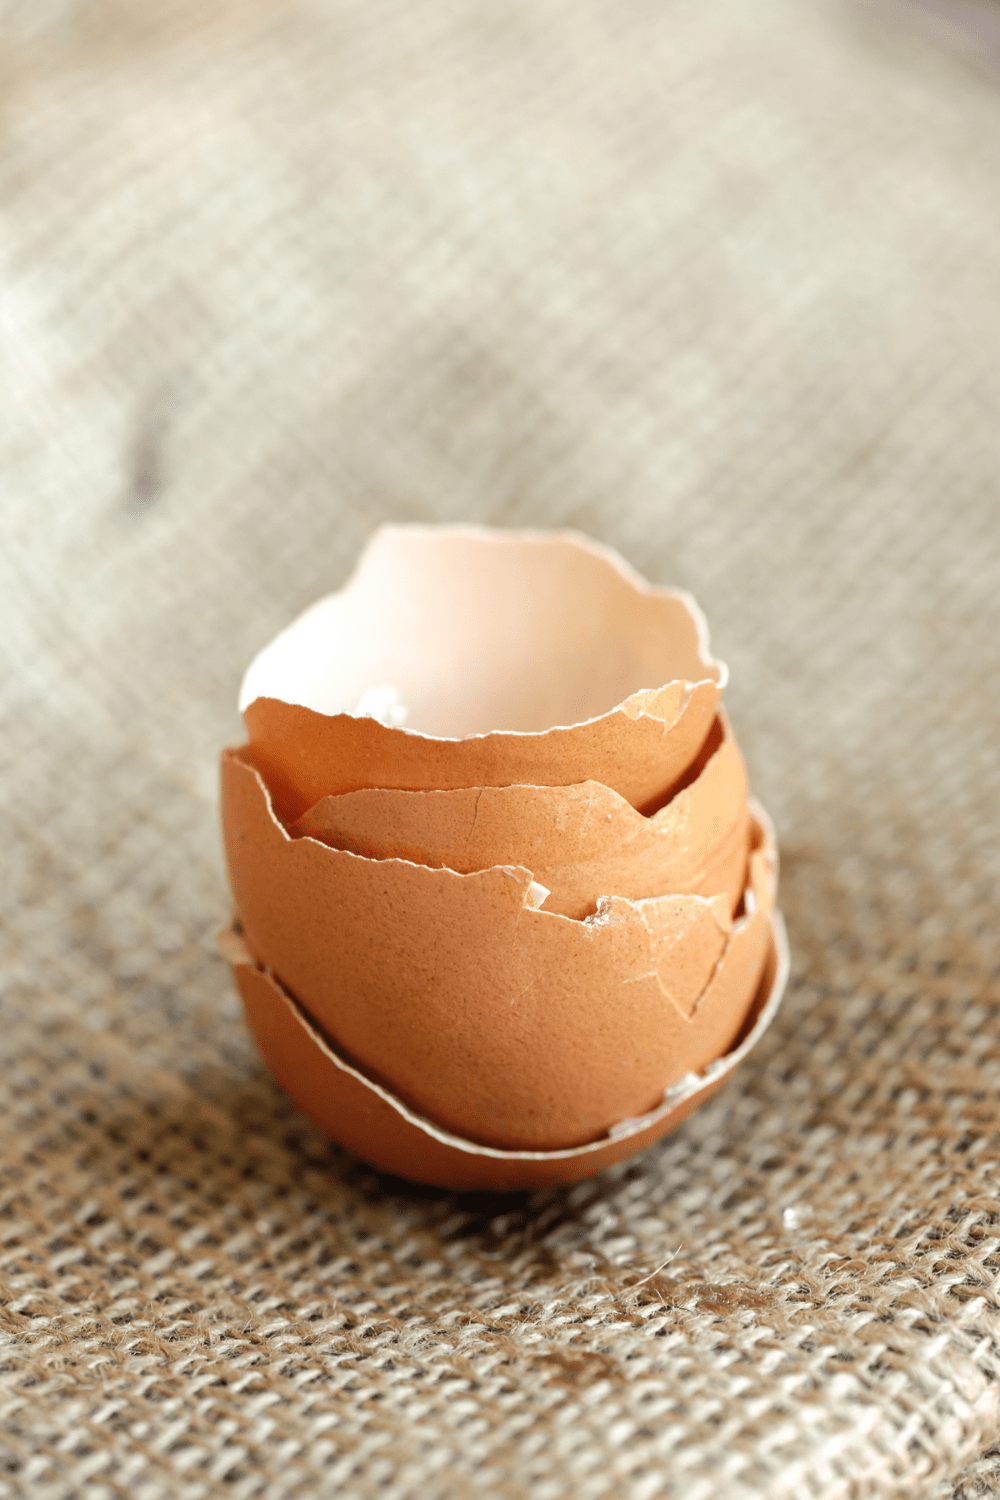 stack of broken egg shells on a beige fabric